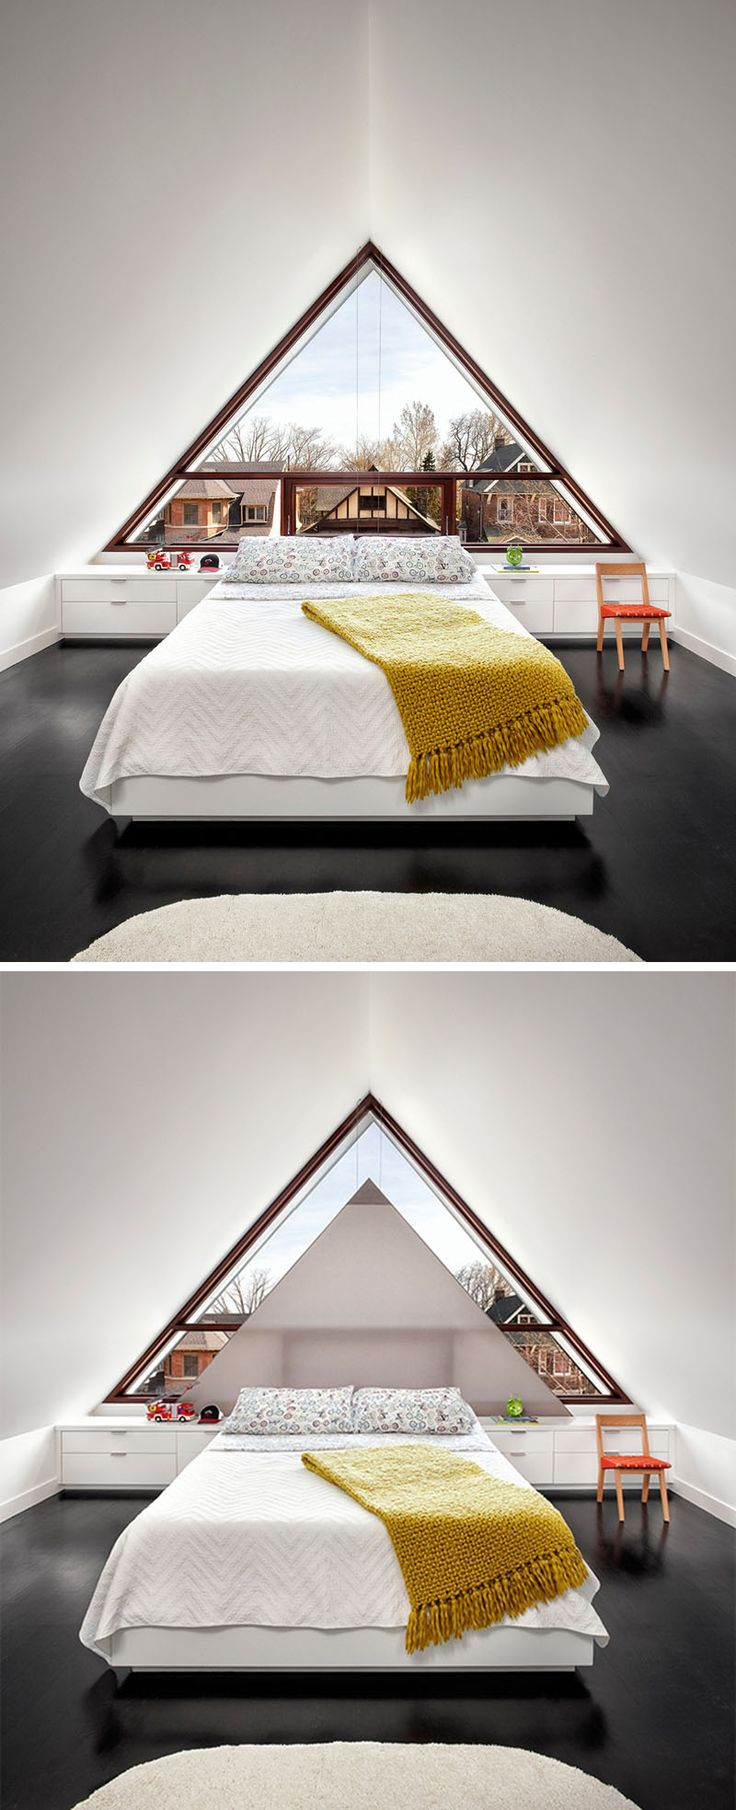 Room Attic Room Replaces The Gable With A Large